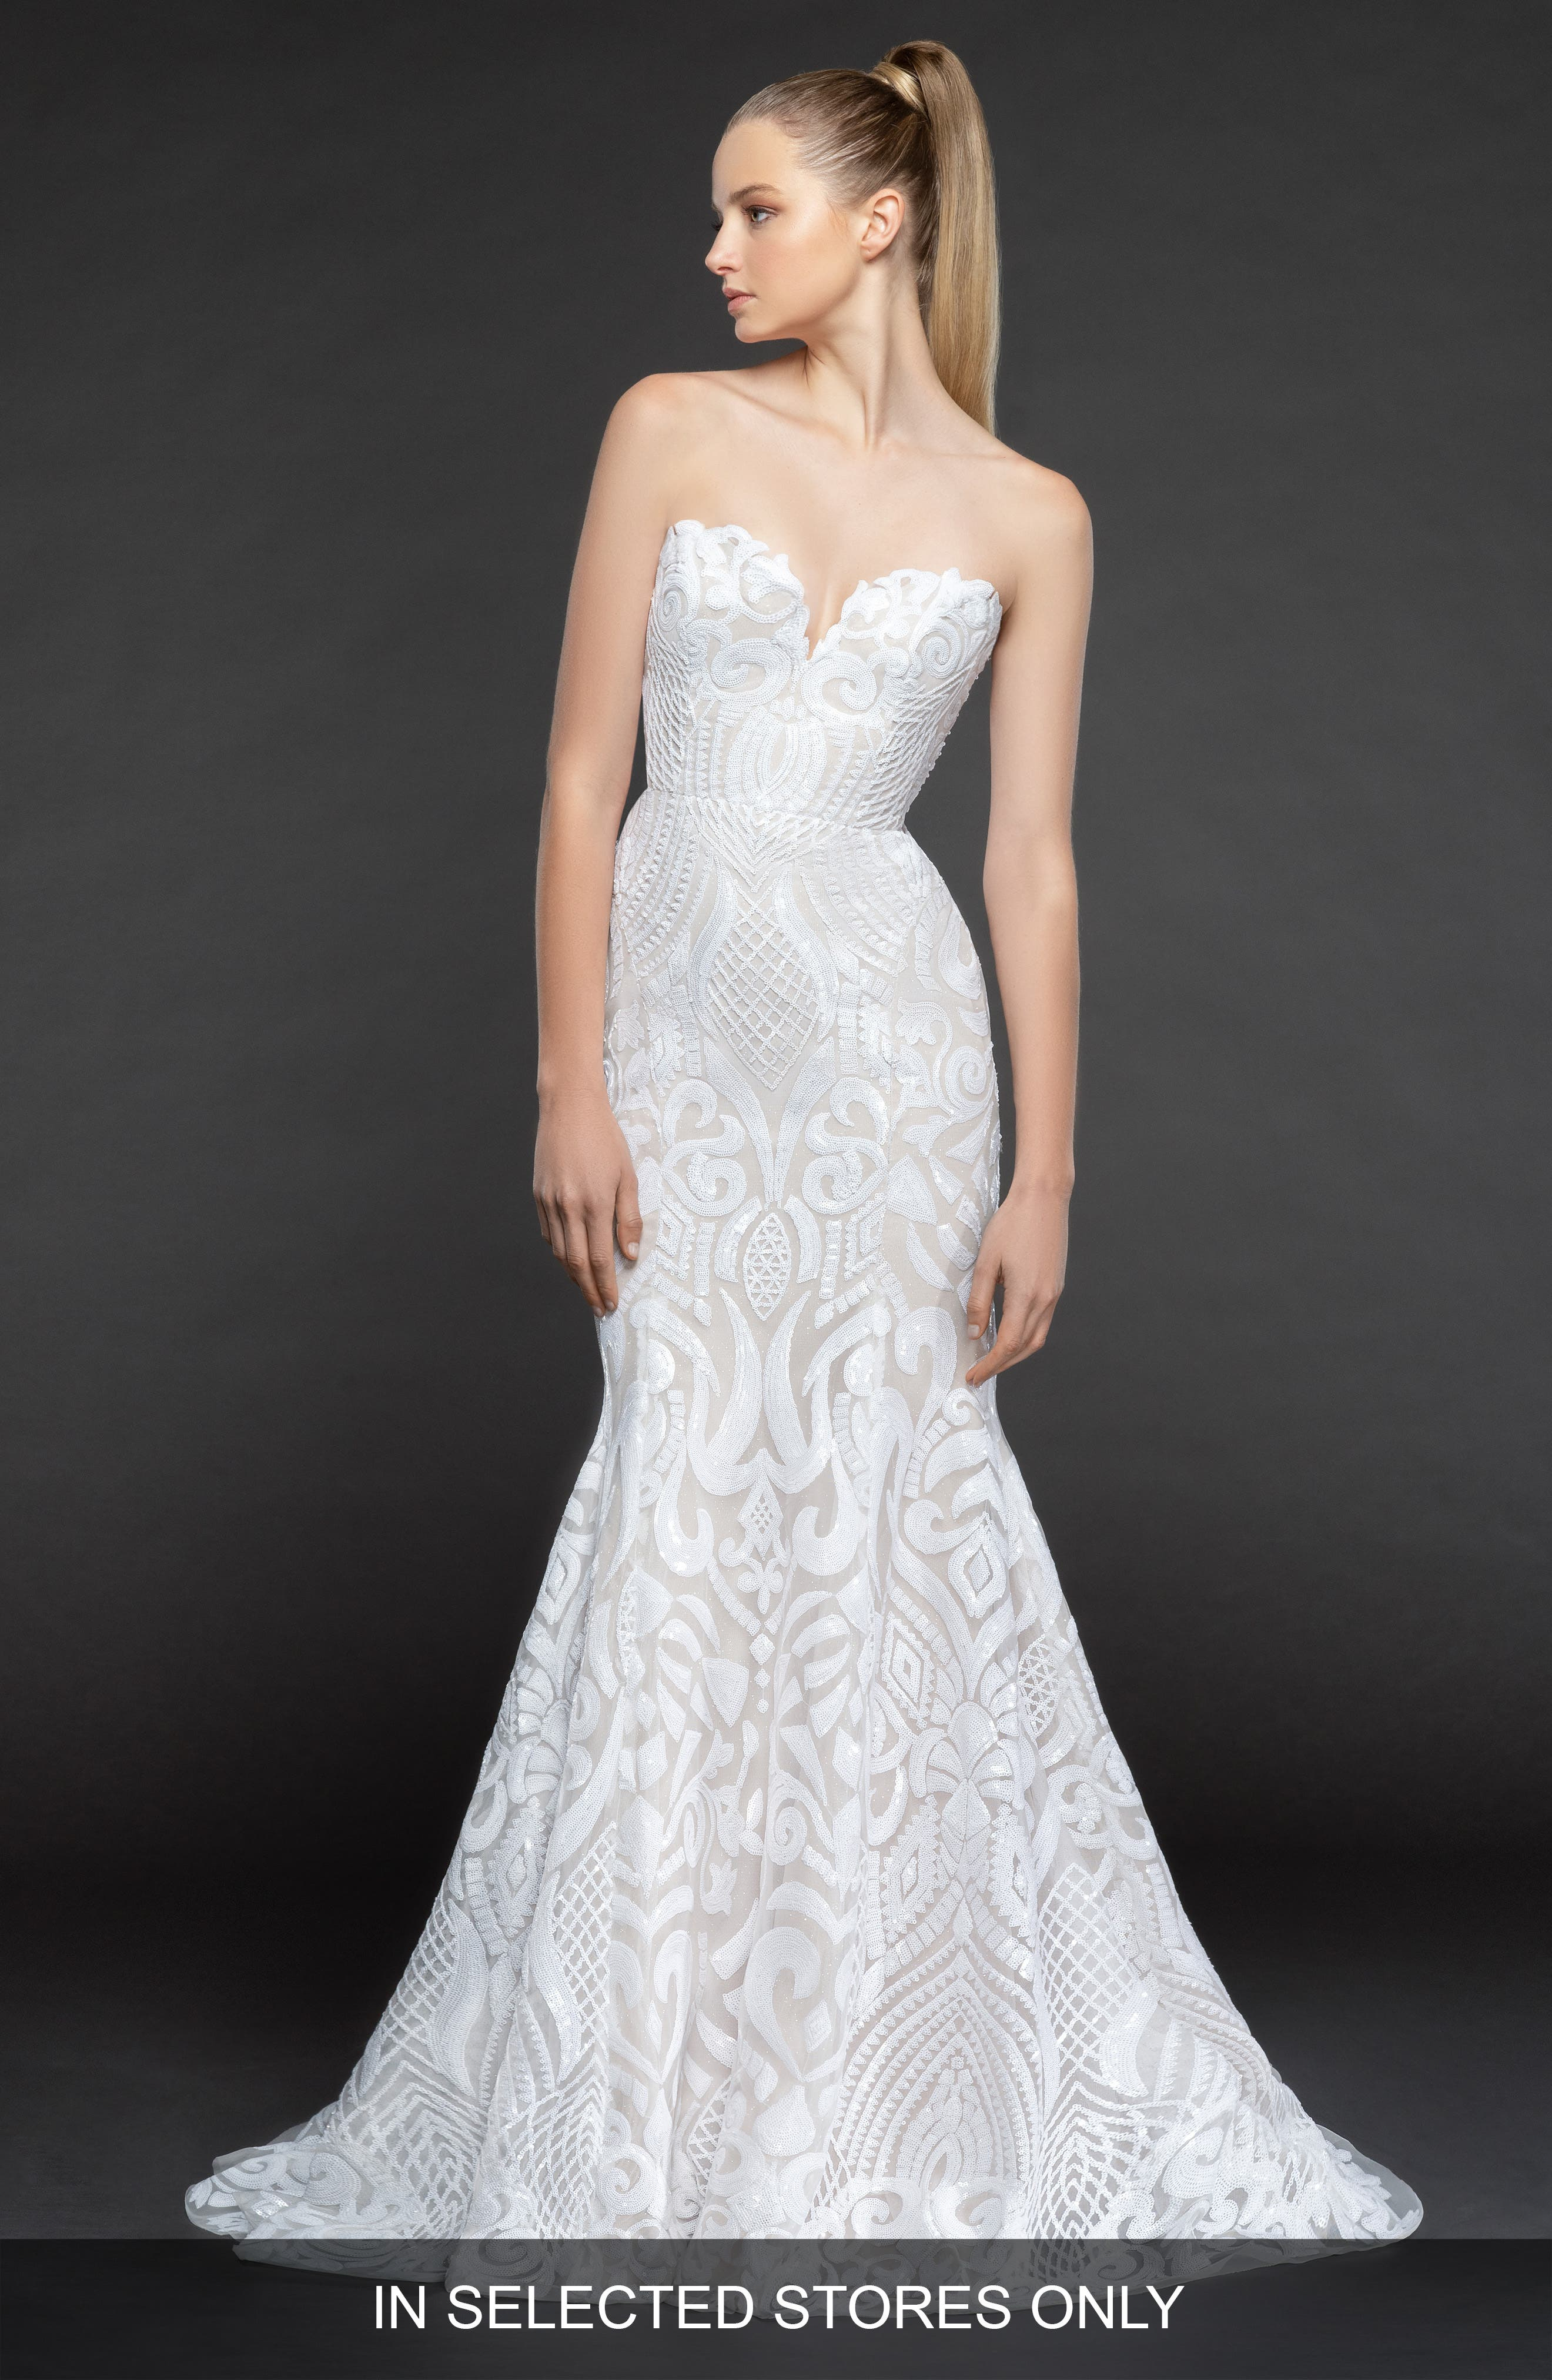 Blush By Hayley Paige Safyr Embellished Trumpet Gown, Size IN STORE ONLY - Ivory